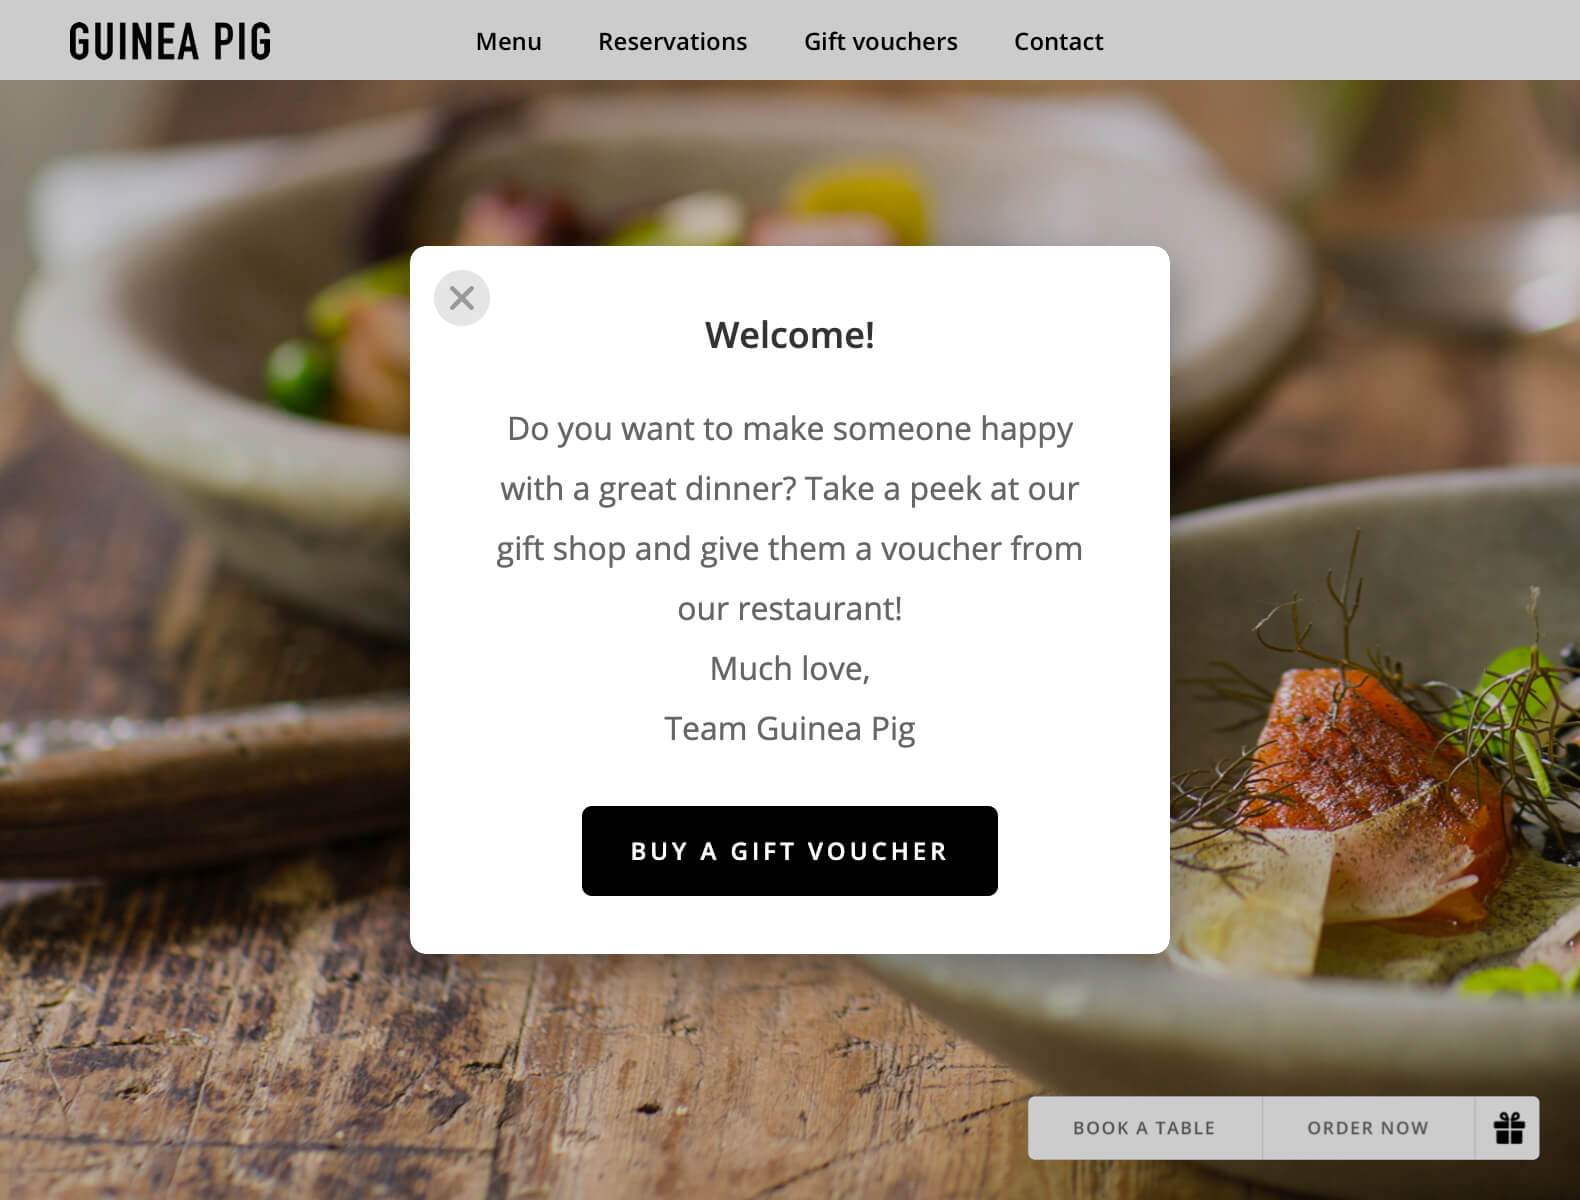 Show a pop-up on your website